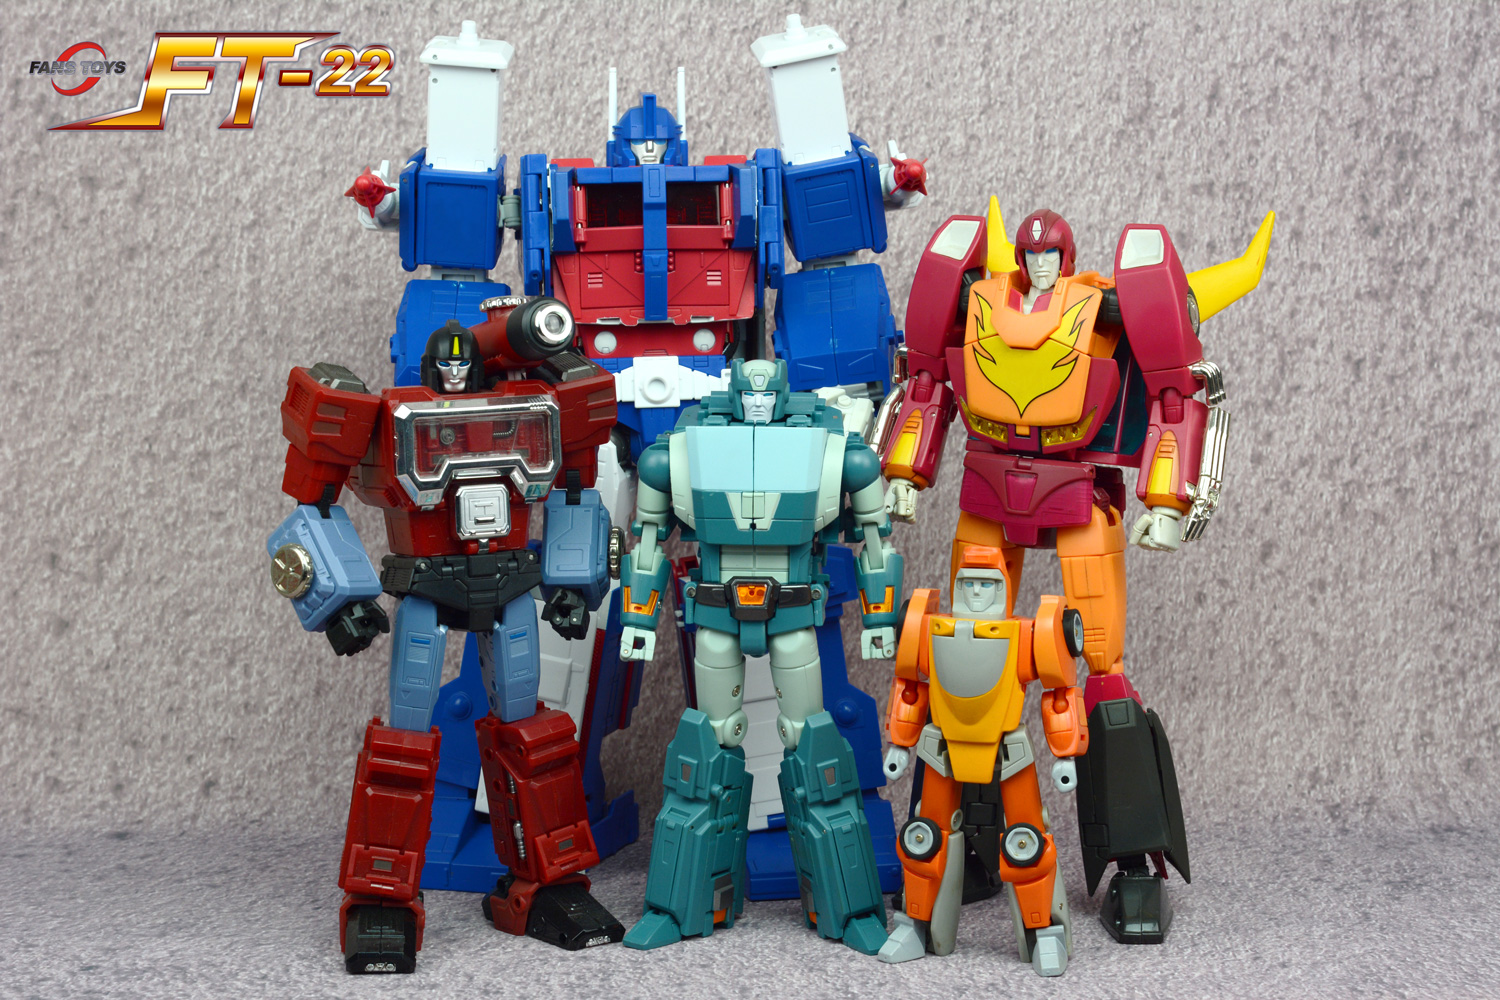 List Of Transformers >> Fans Toys FT22 Koot